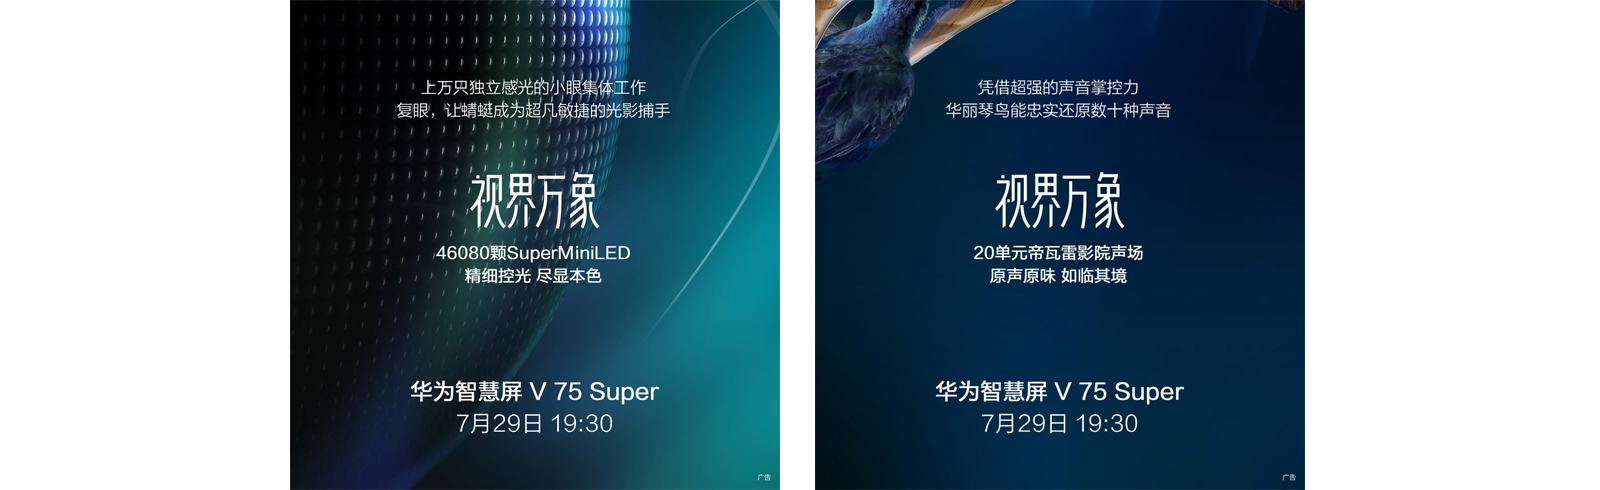 The Huawei Smart Screen V75 Super with Mini LED and Smart Screen V98 will be released on July 29